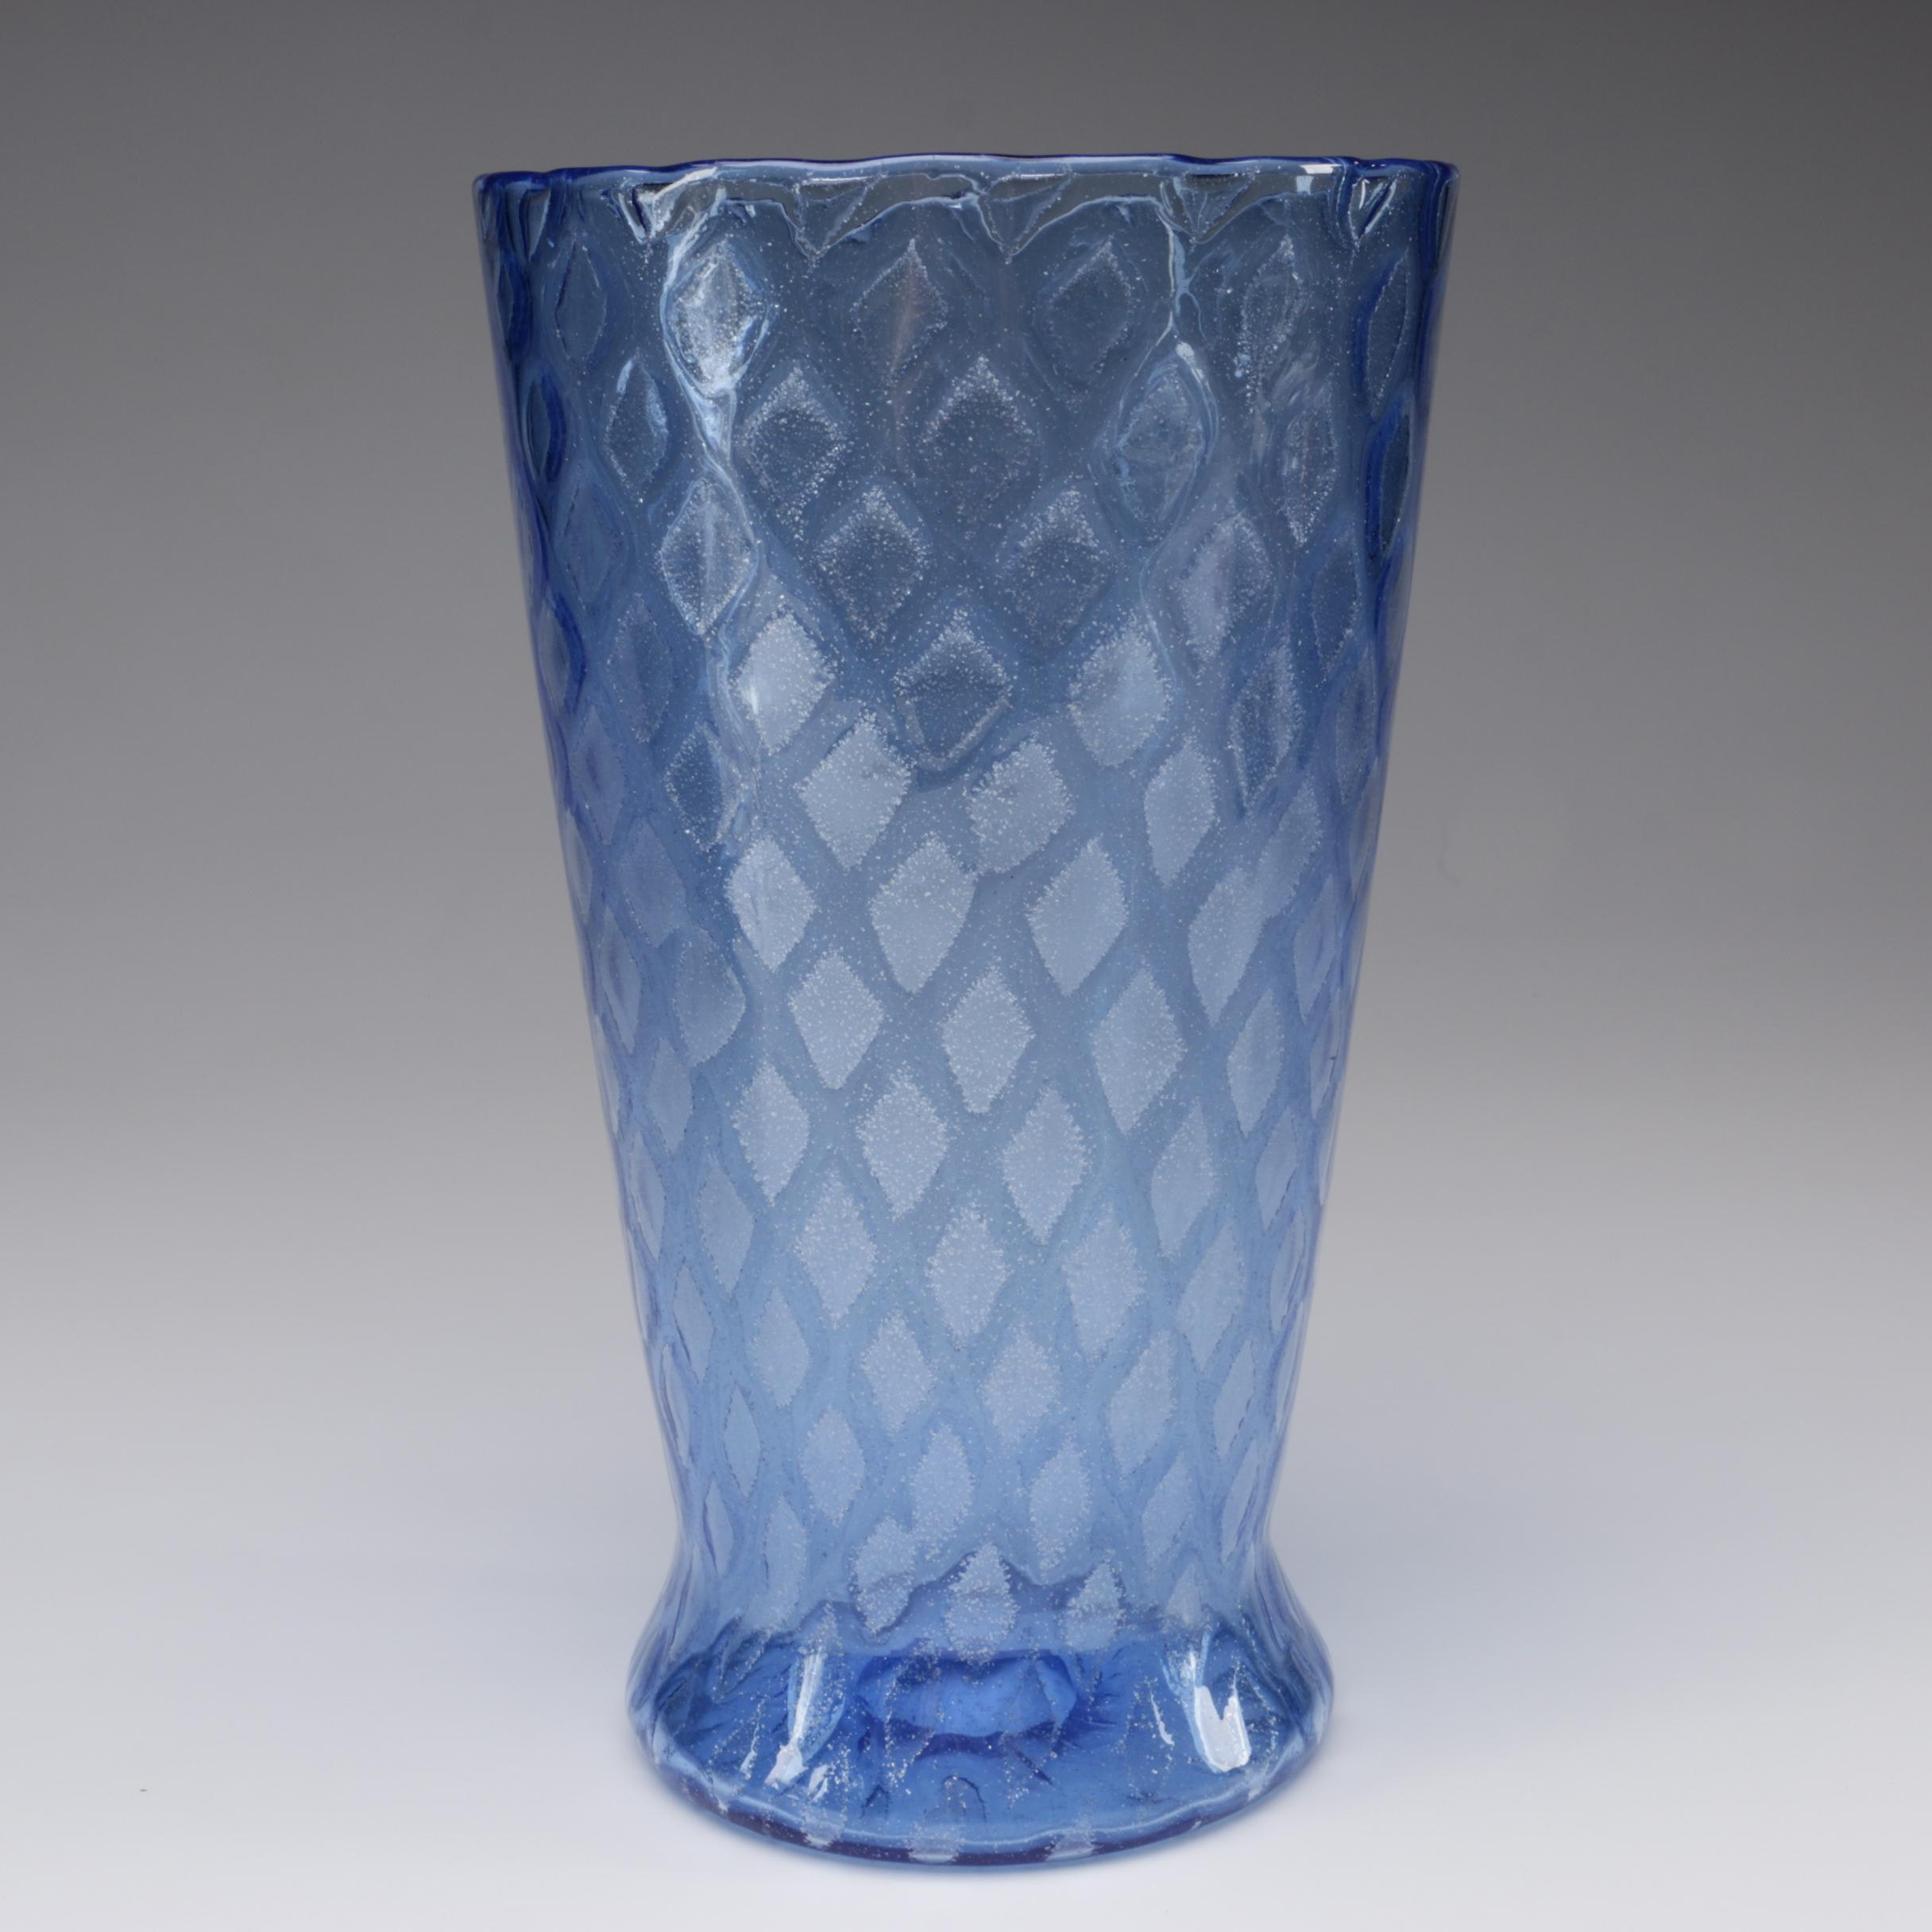 "Steuben French Blue Art Glass ""Silverina"" Vase by Frederick Carder, 1903 - 1933"